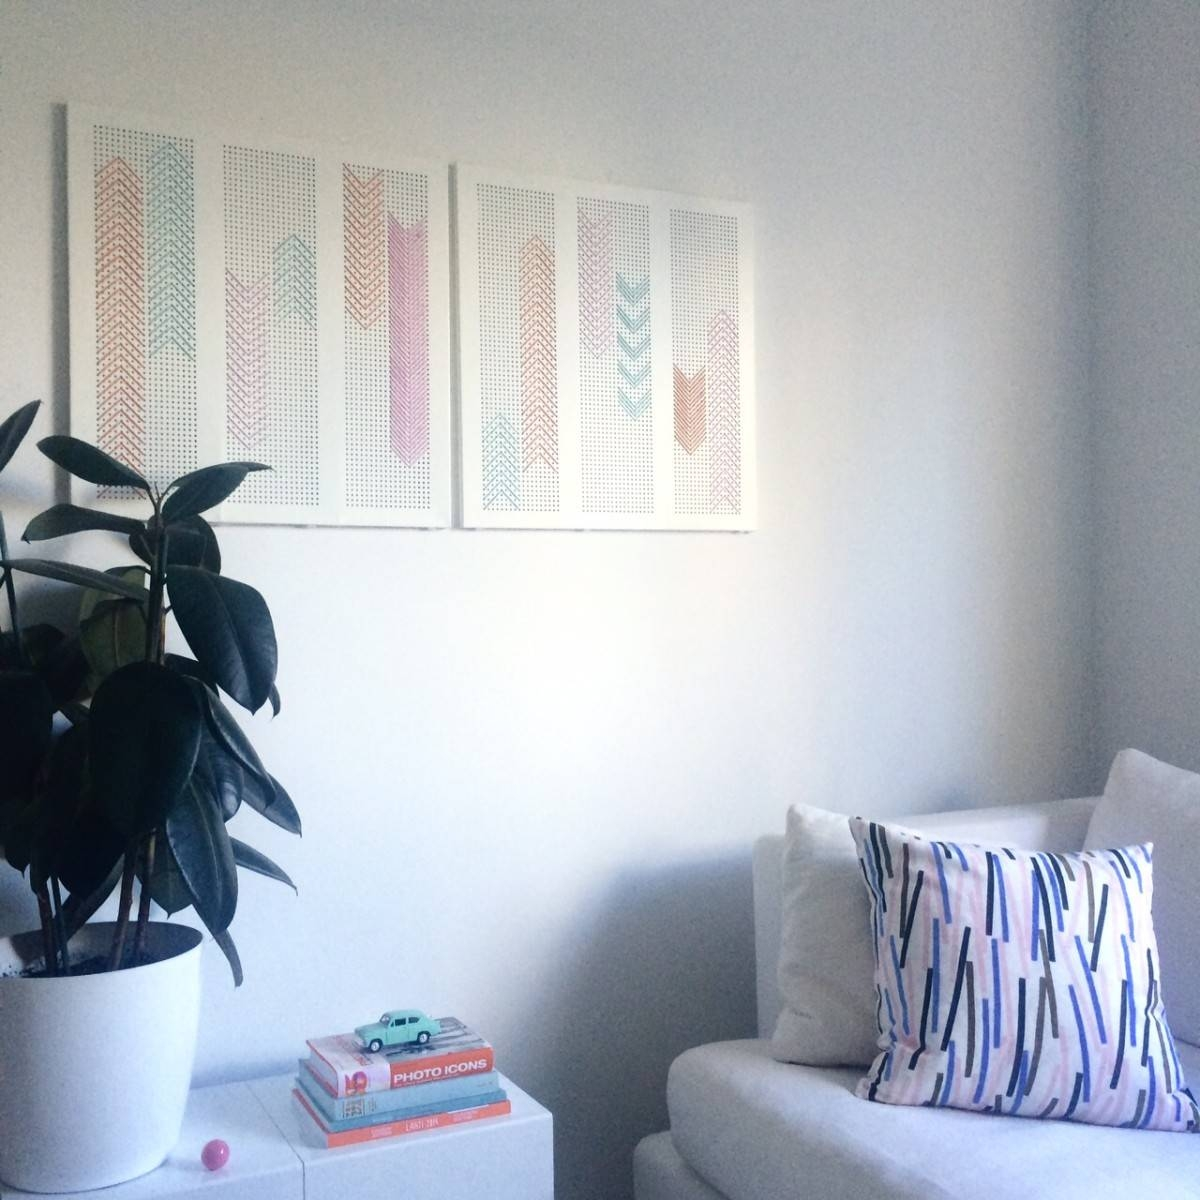 Broken Algot Shelf To Wall Art For Living Room – Ikea Hackers In 2018 Ikea Metal Wall Art (View 2 of 20)